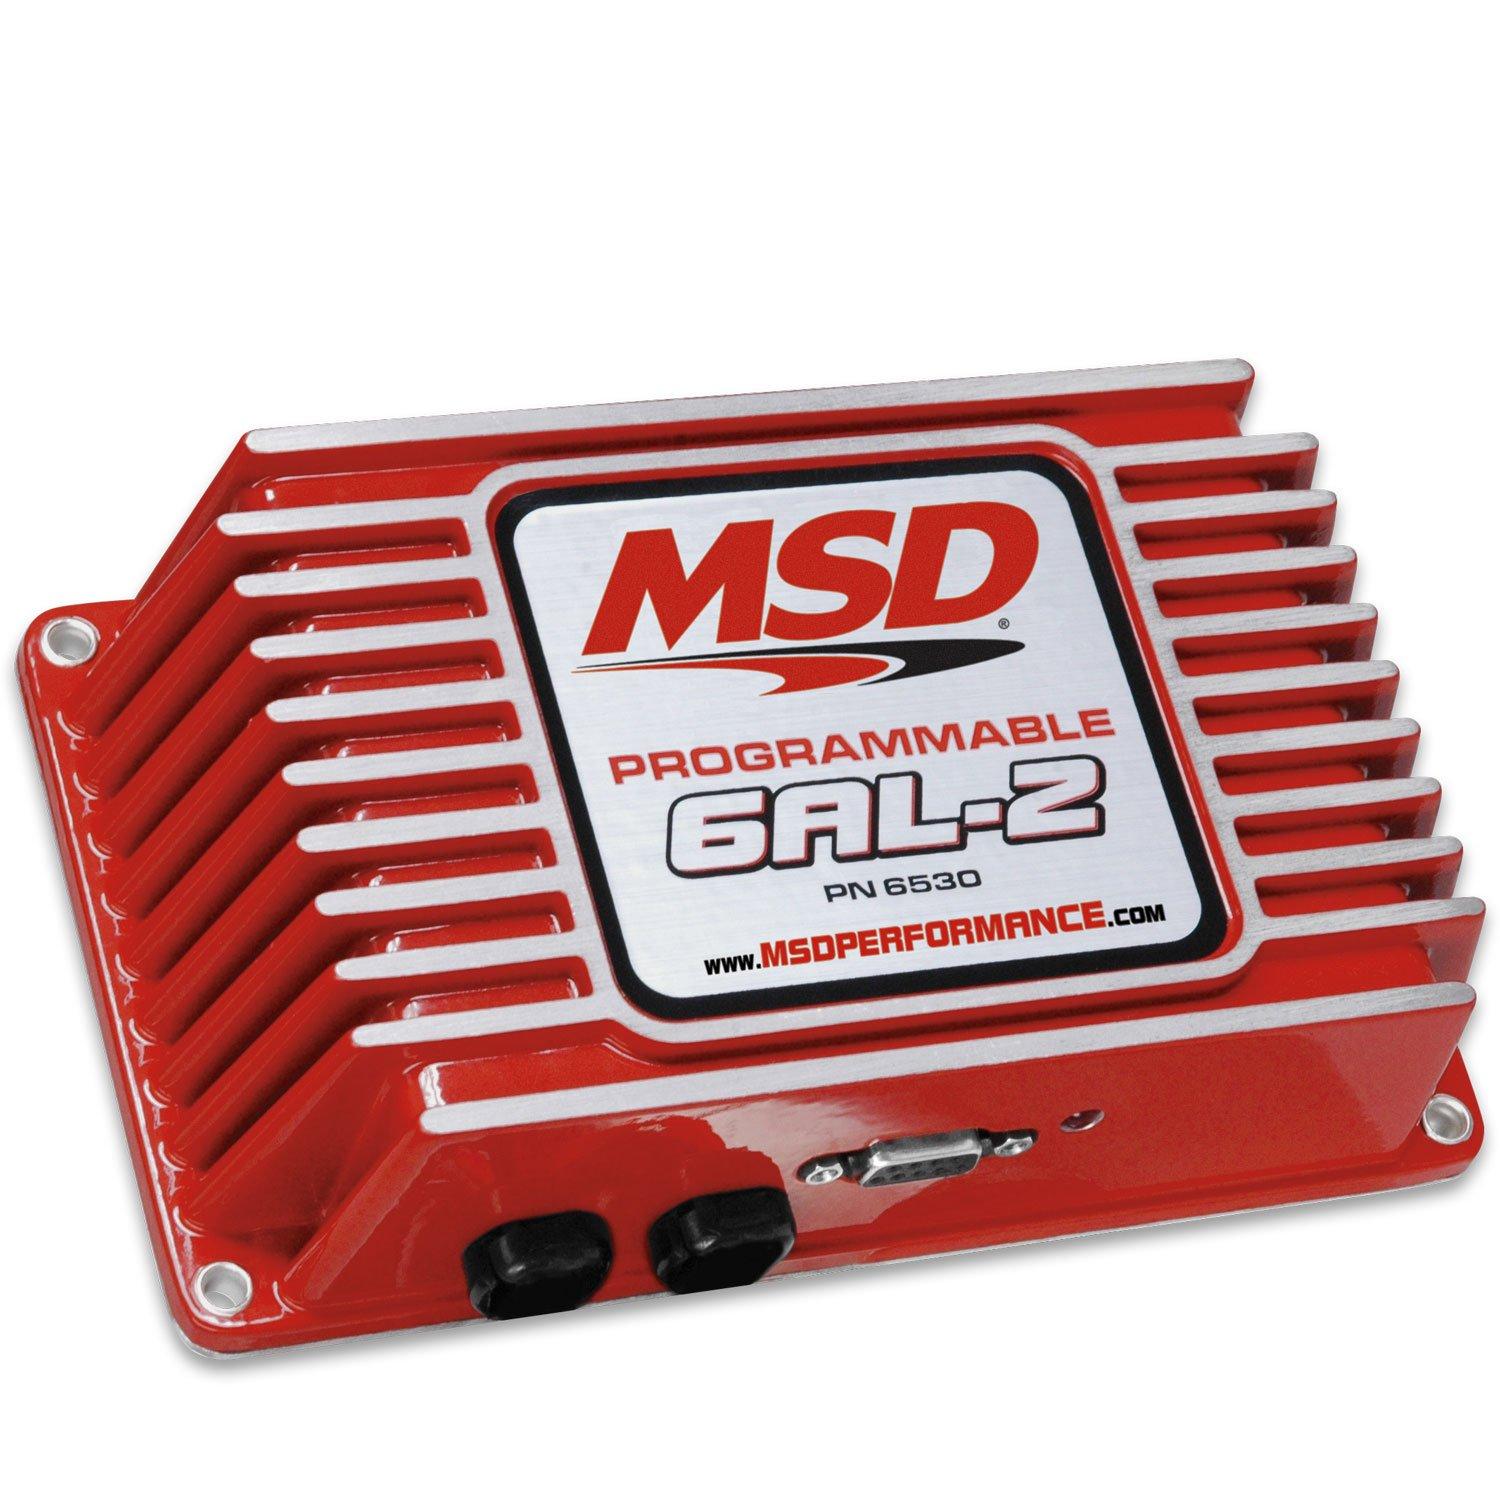 Msd 6530 Digital Programmable 6al 2 Chevy Wiring 8570 Image